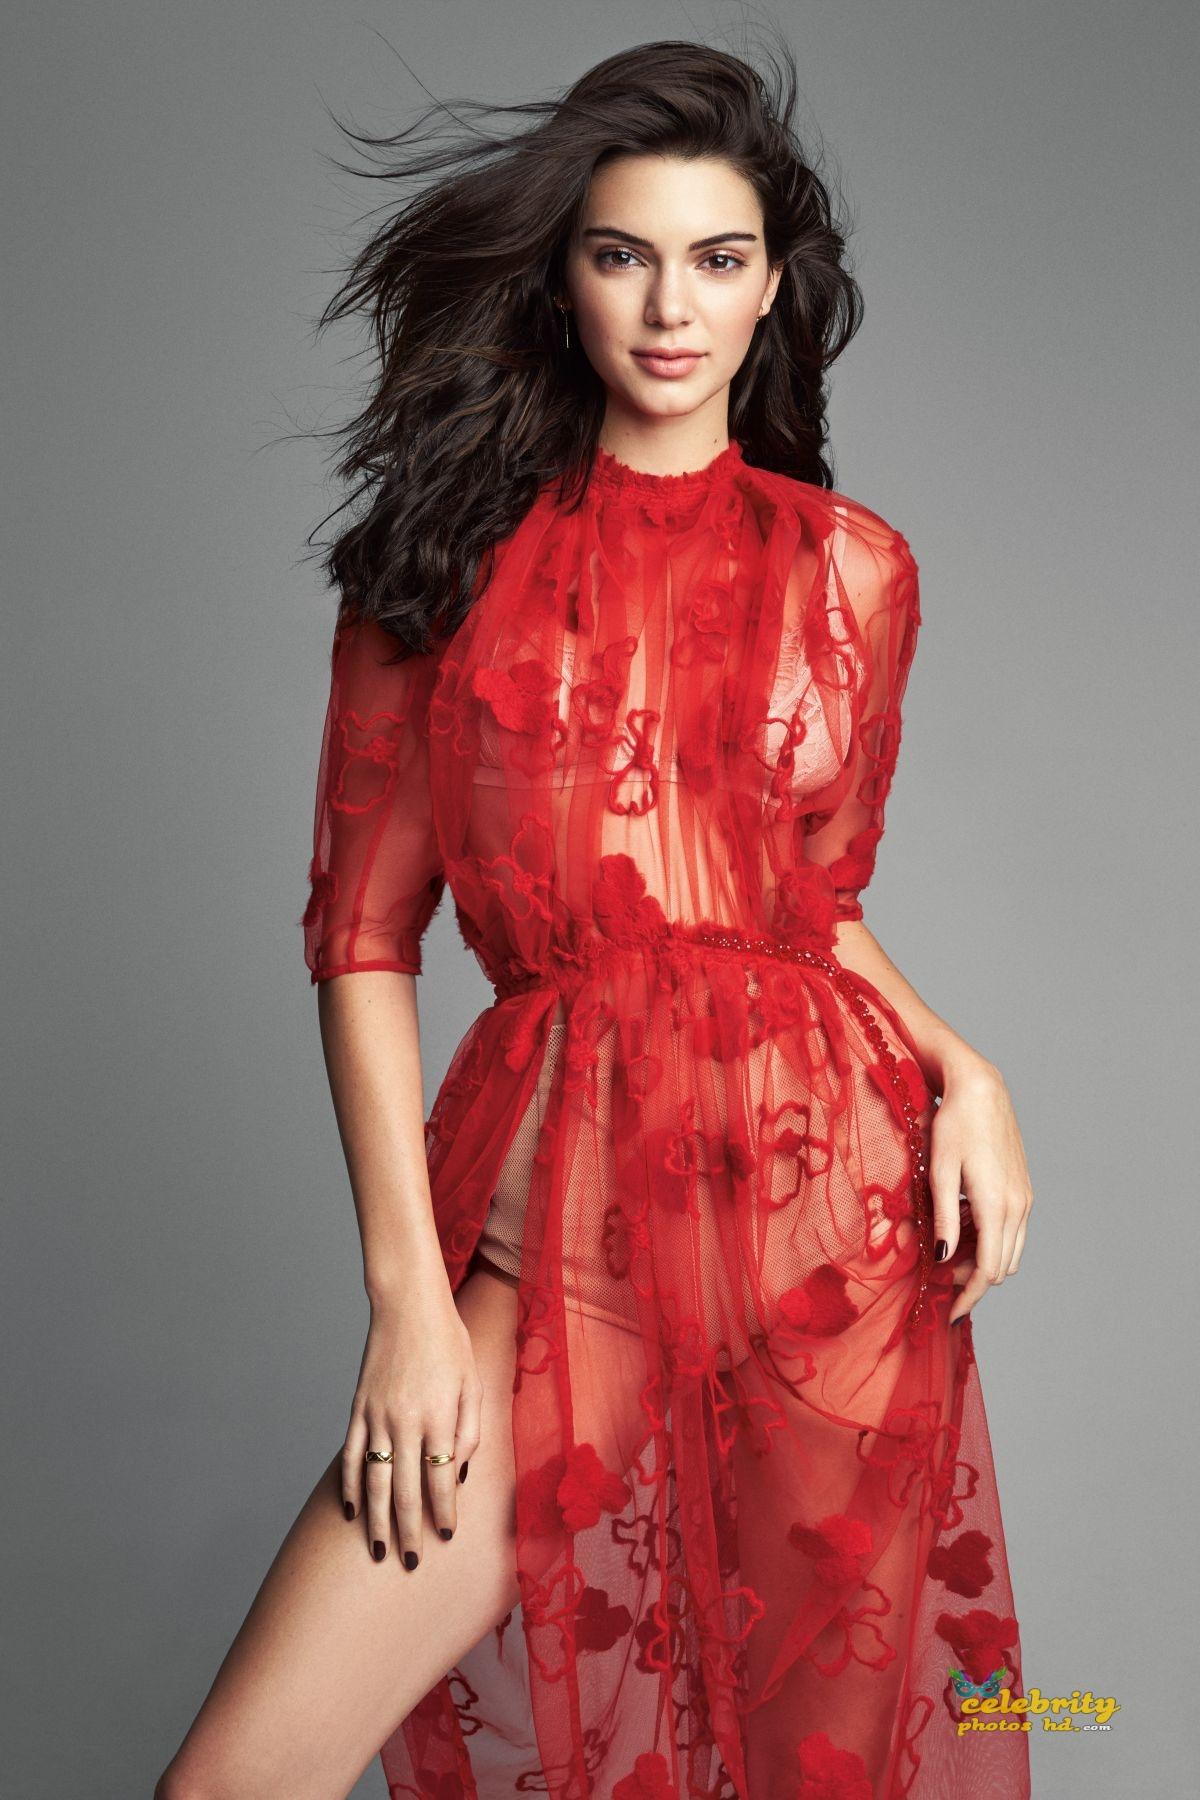 kendall-jenner-at-patrick-demarchelier-photoshoot-for-allure-october-2016_2